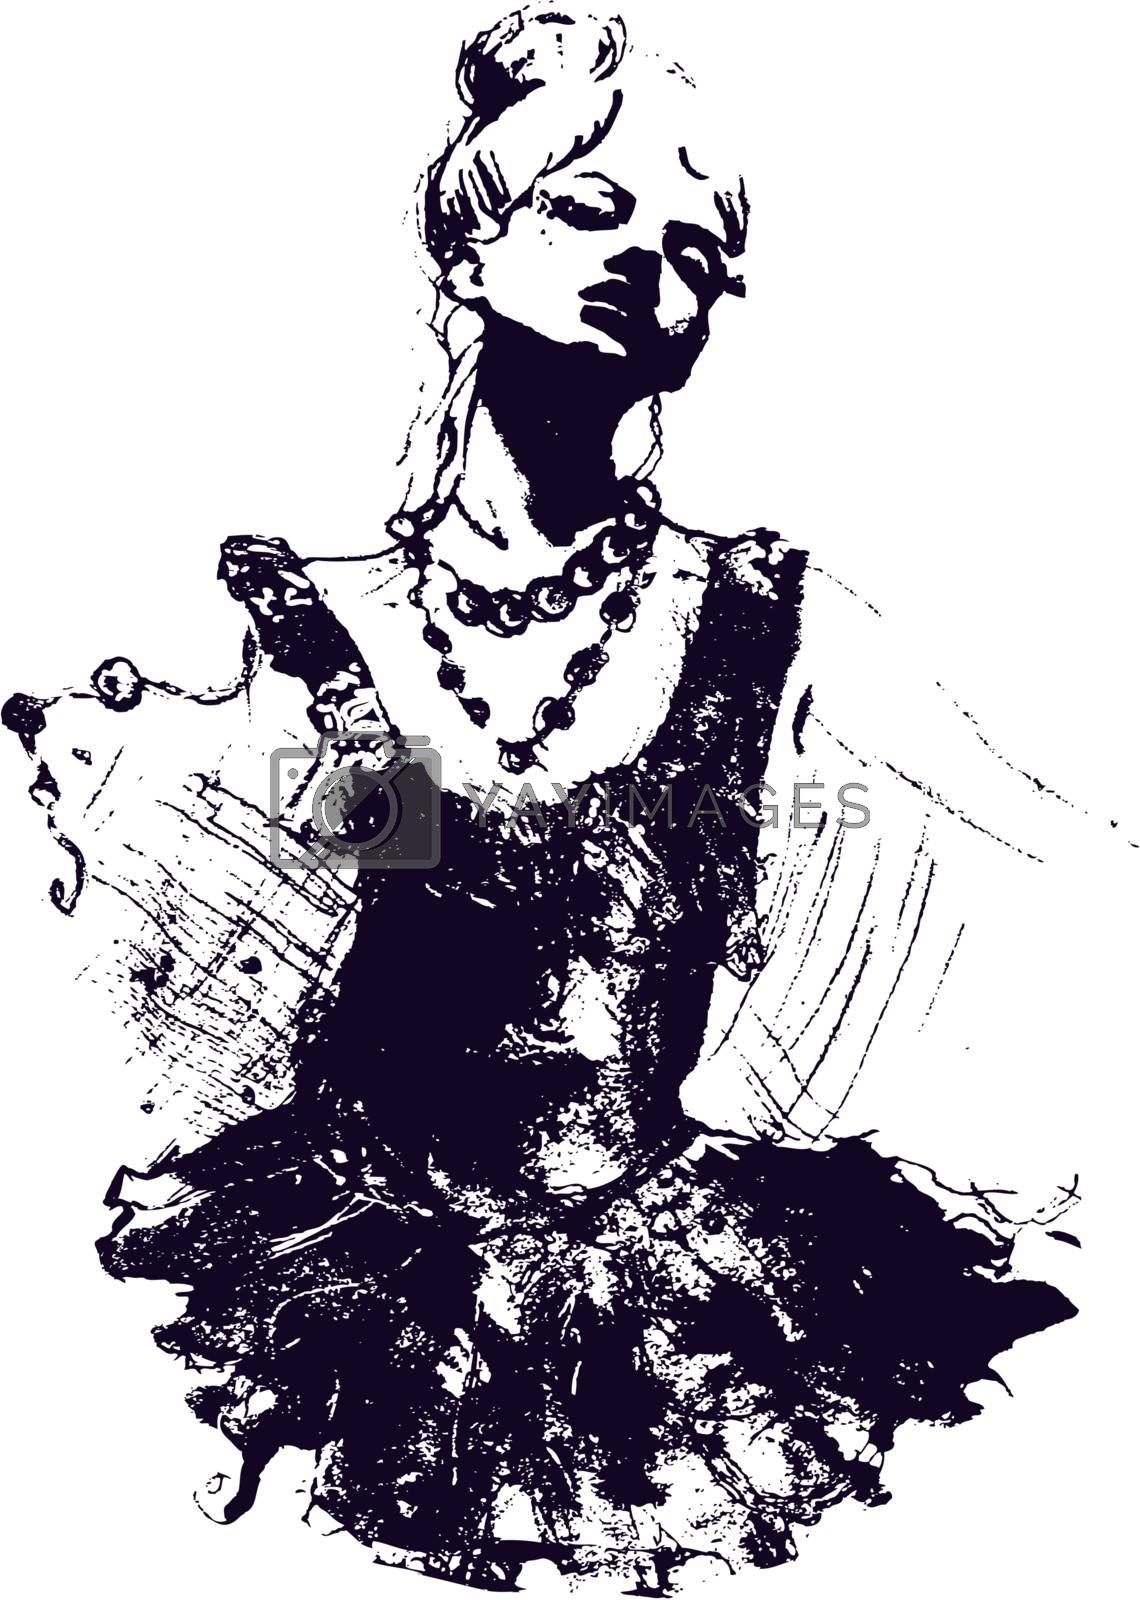 Lady Dancer Drawing Sketch Royalty Free Stock Image Yayimages Royalty Free Stock Photos And Vectors